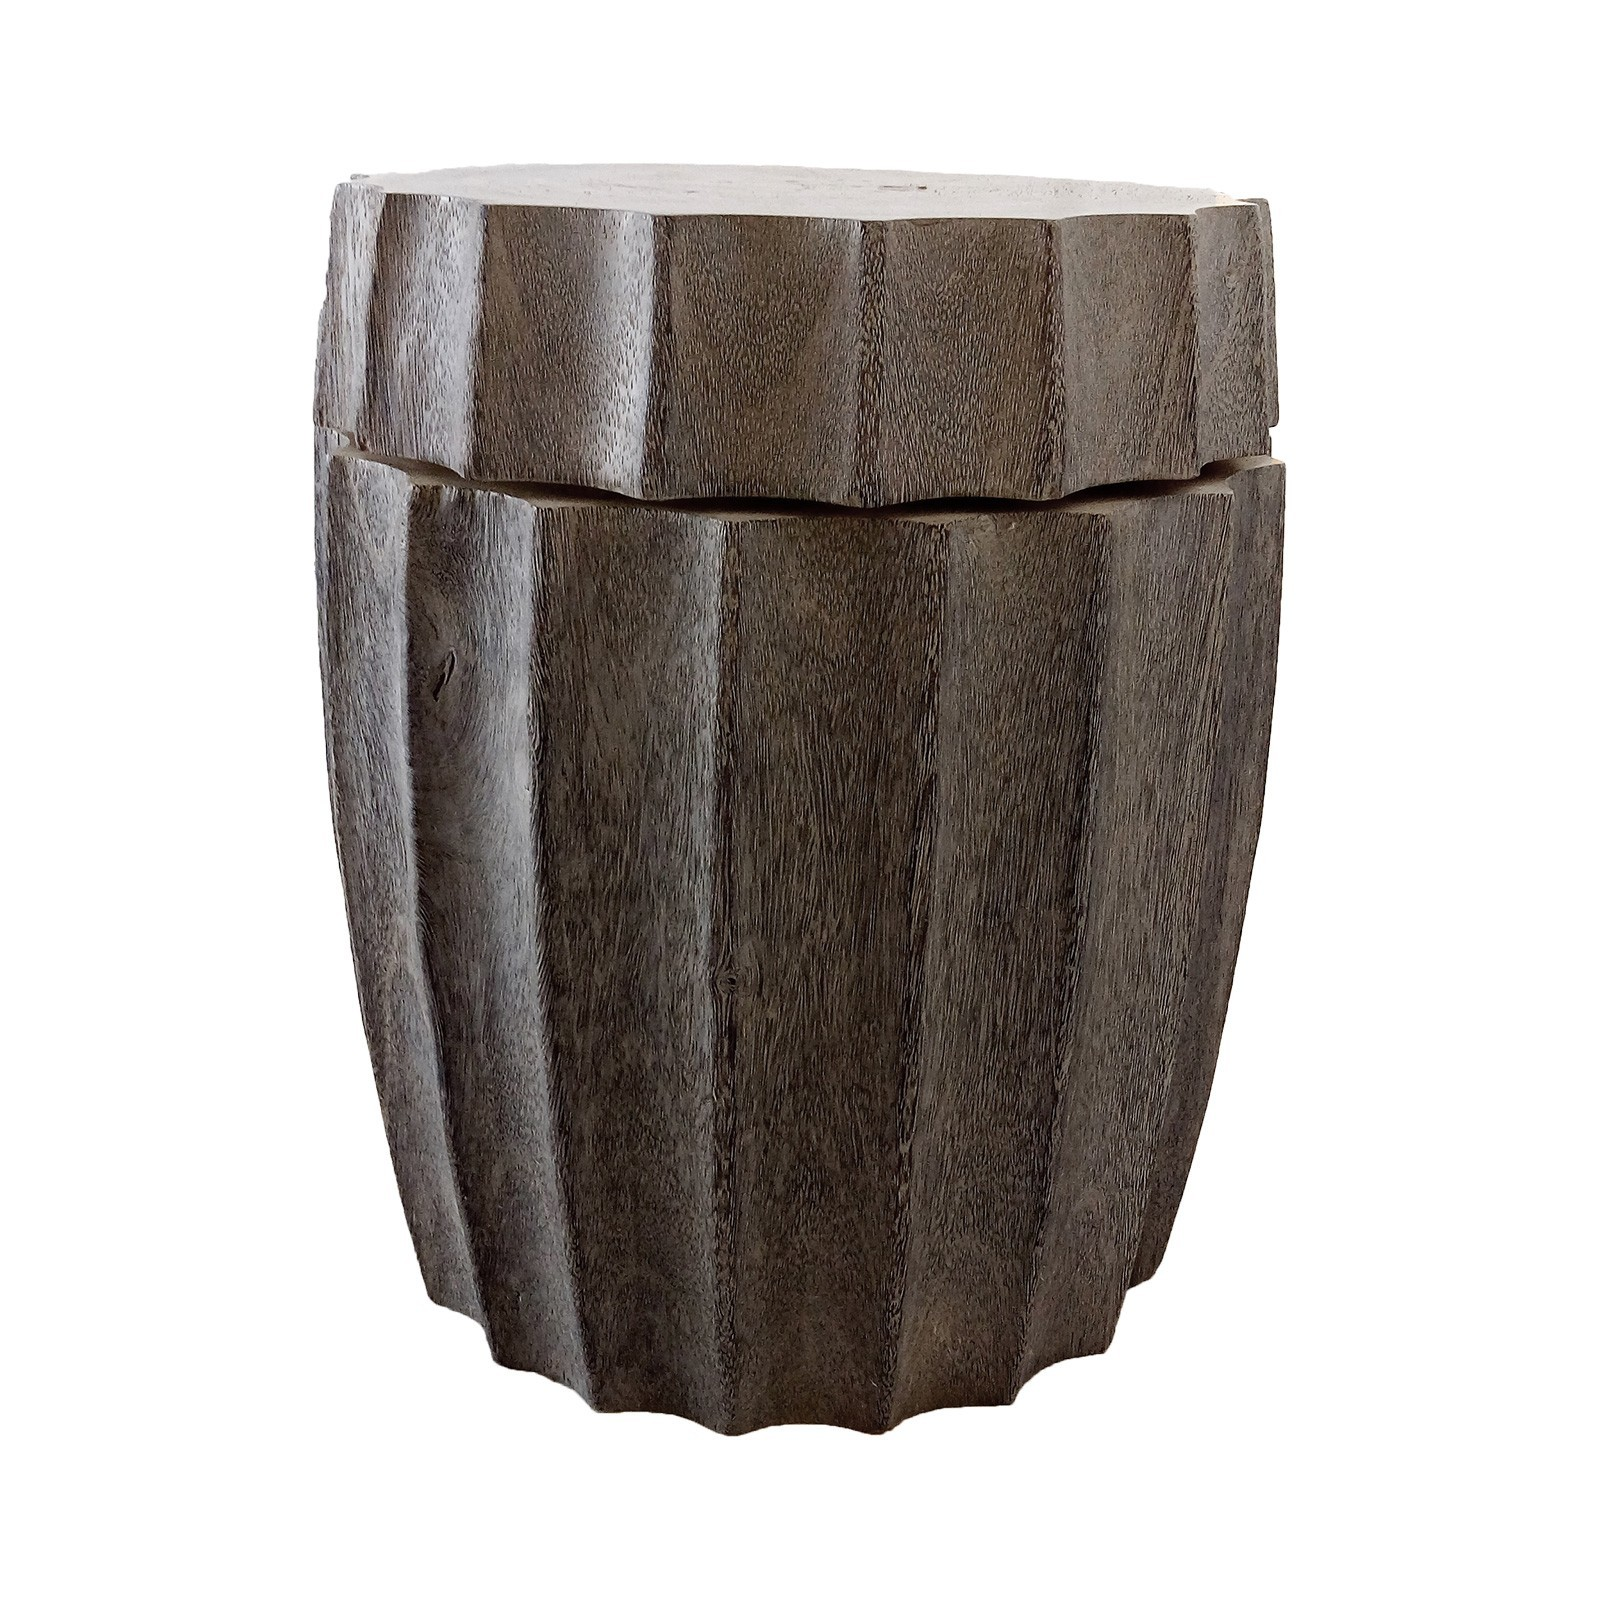 Bottle Top Suar wood Swivel Drum Stool